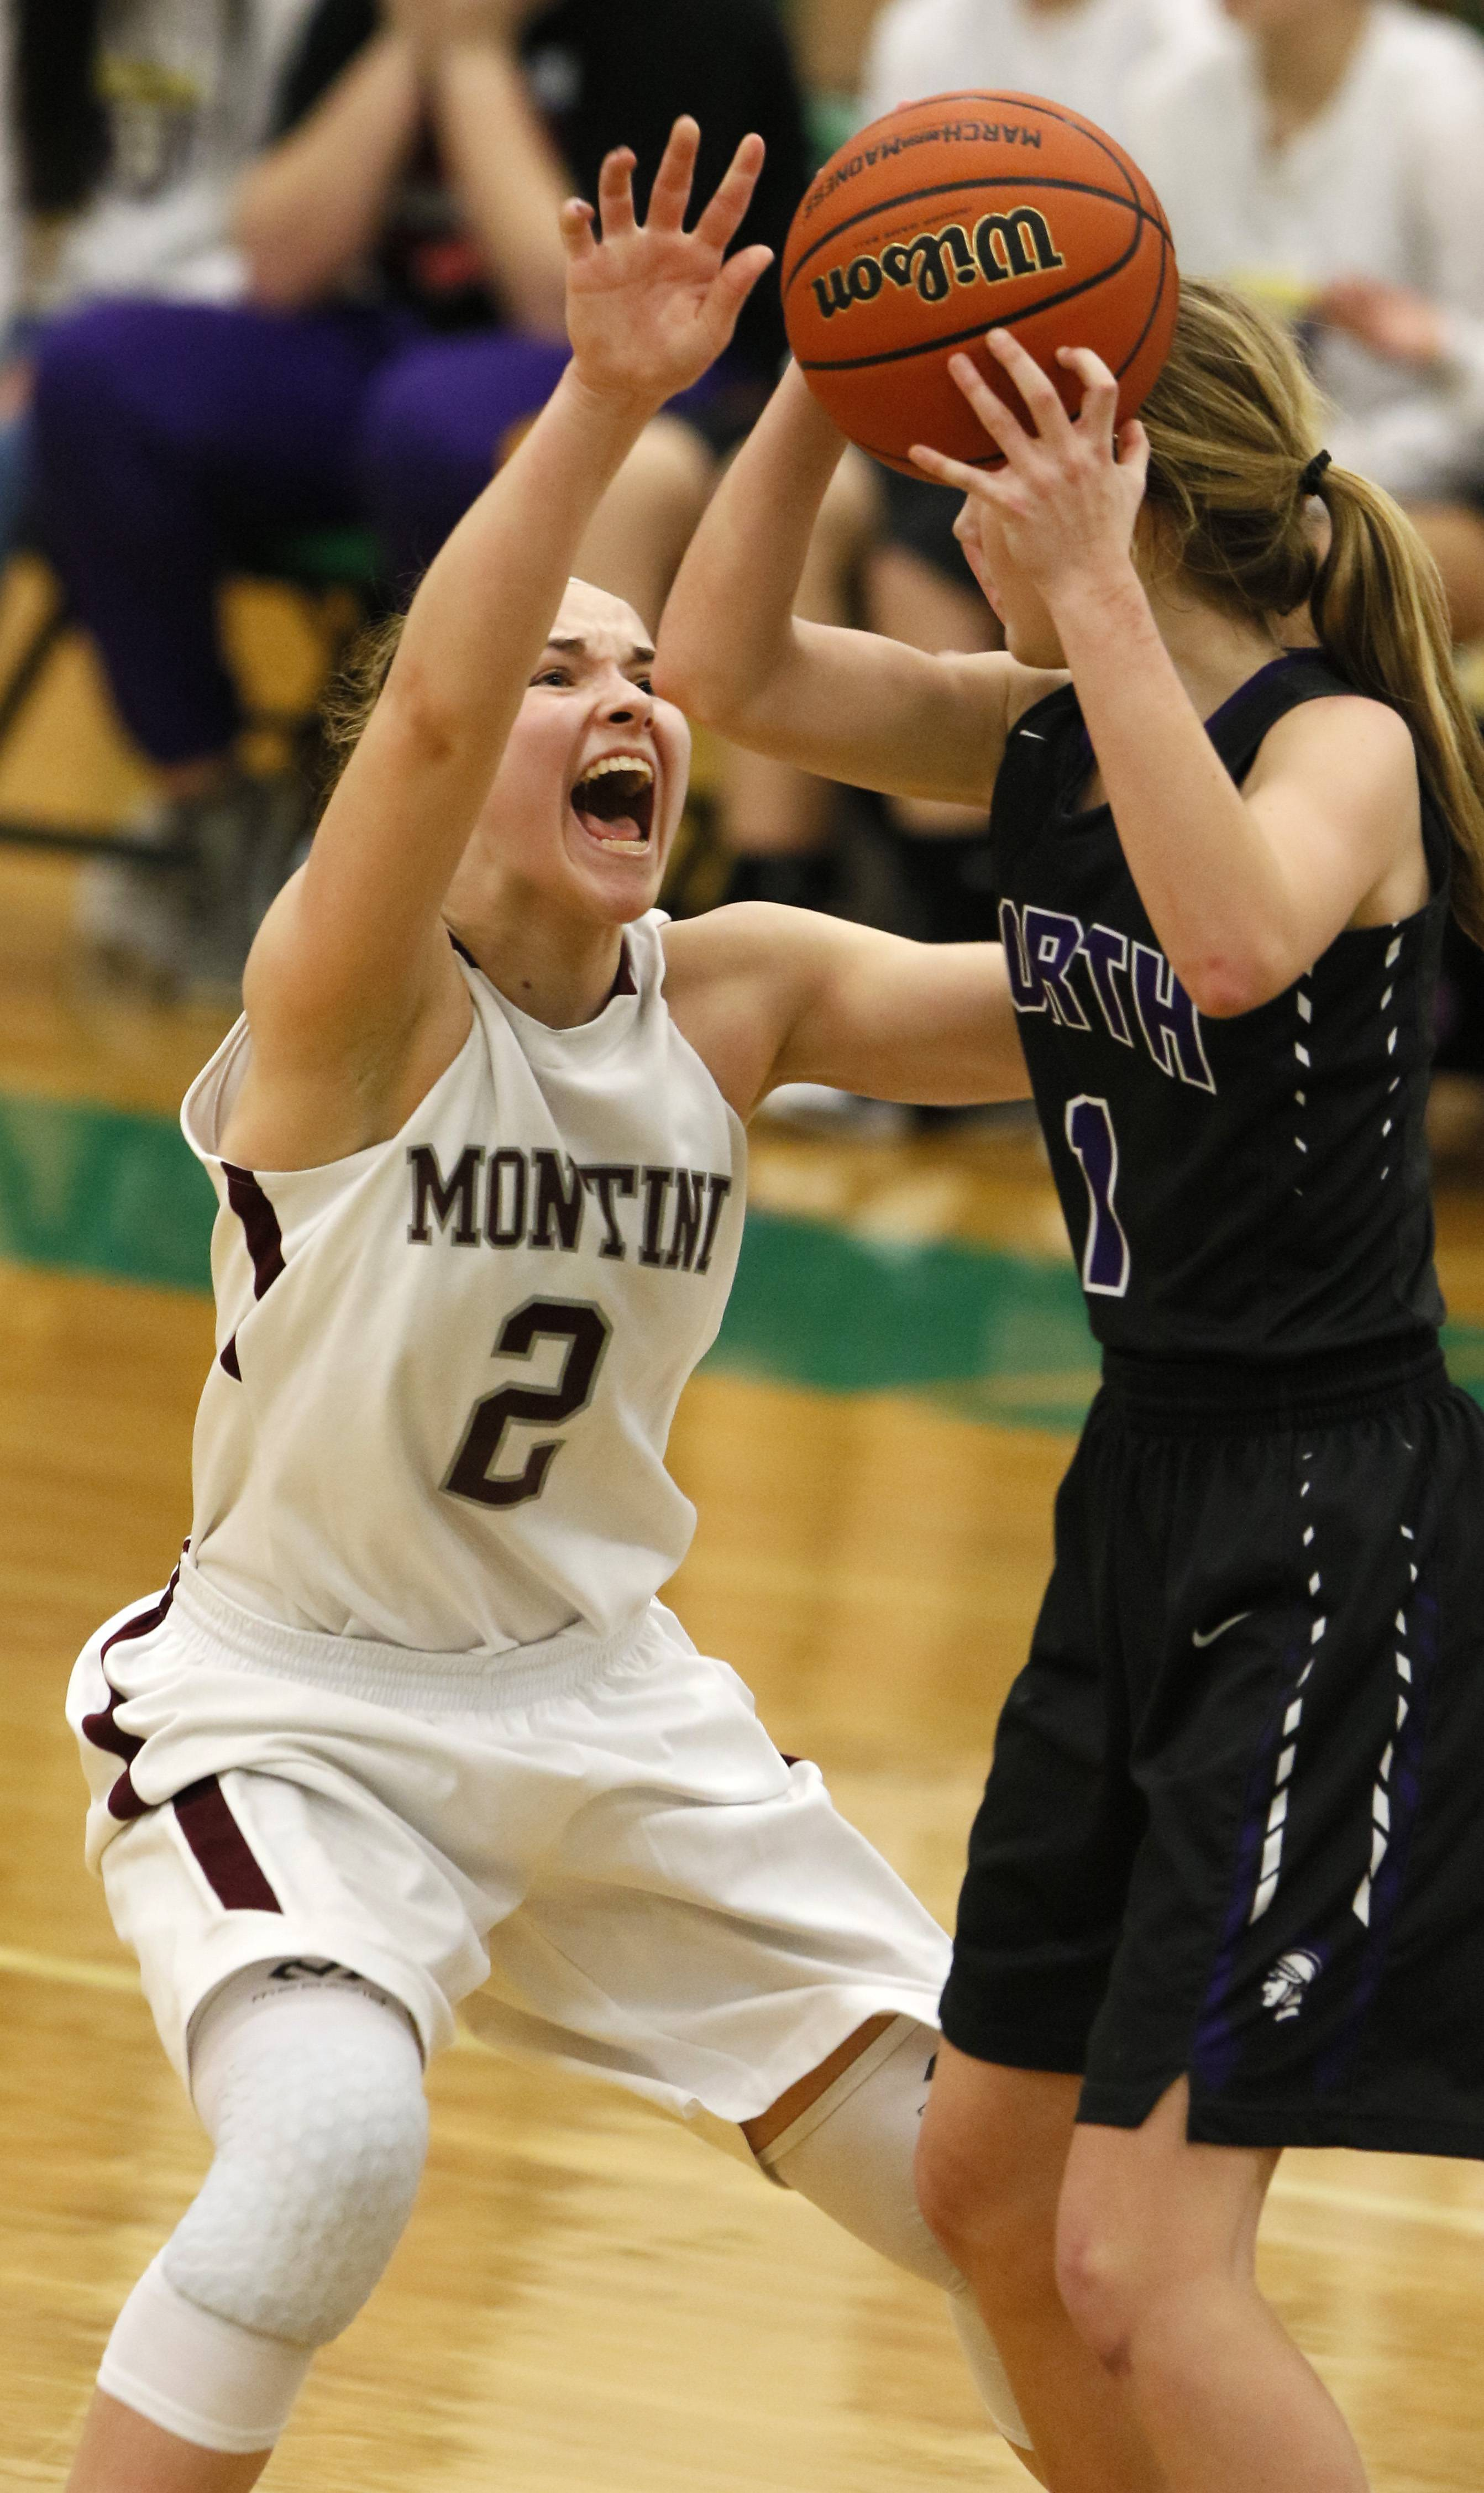 Montini Catholic's Sam Mitchell, left, defends against Downers Grove North's Ellie Gross, right, during the Class 4A Oak Lawn regional girls basketball game.